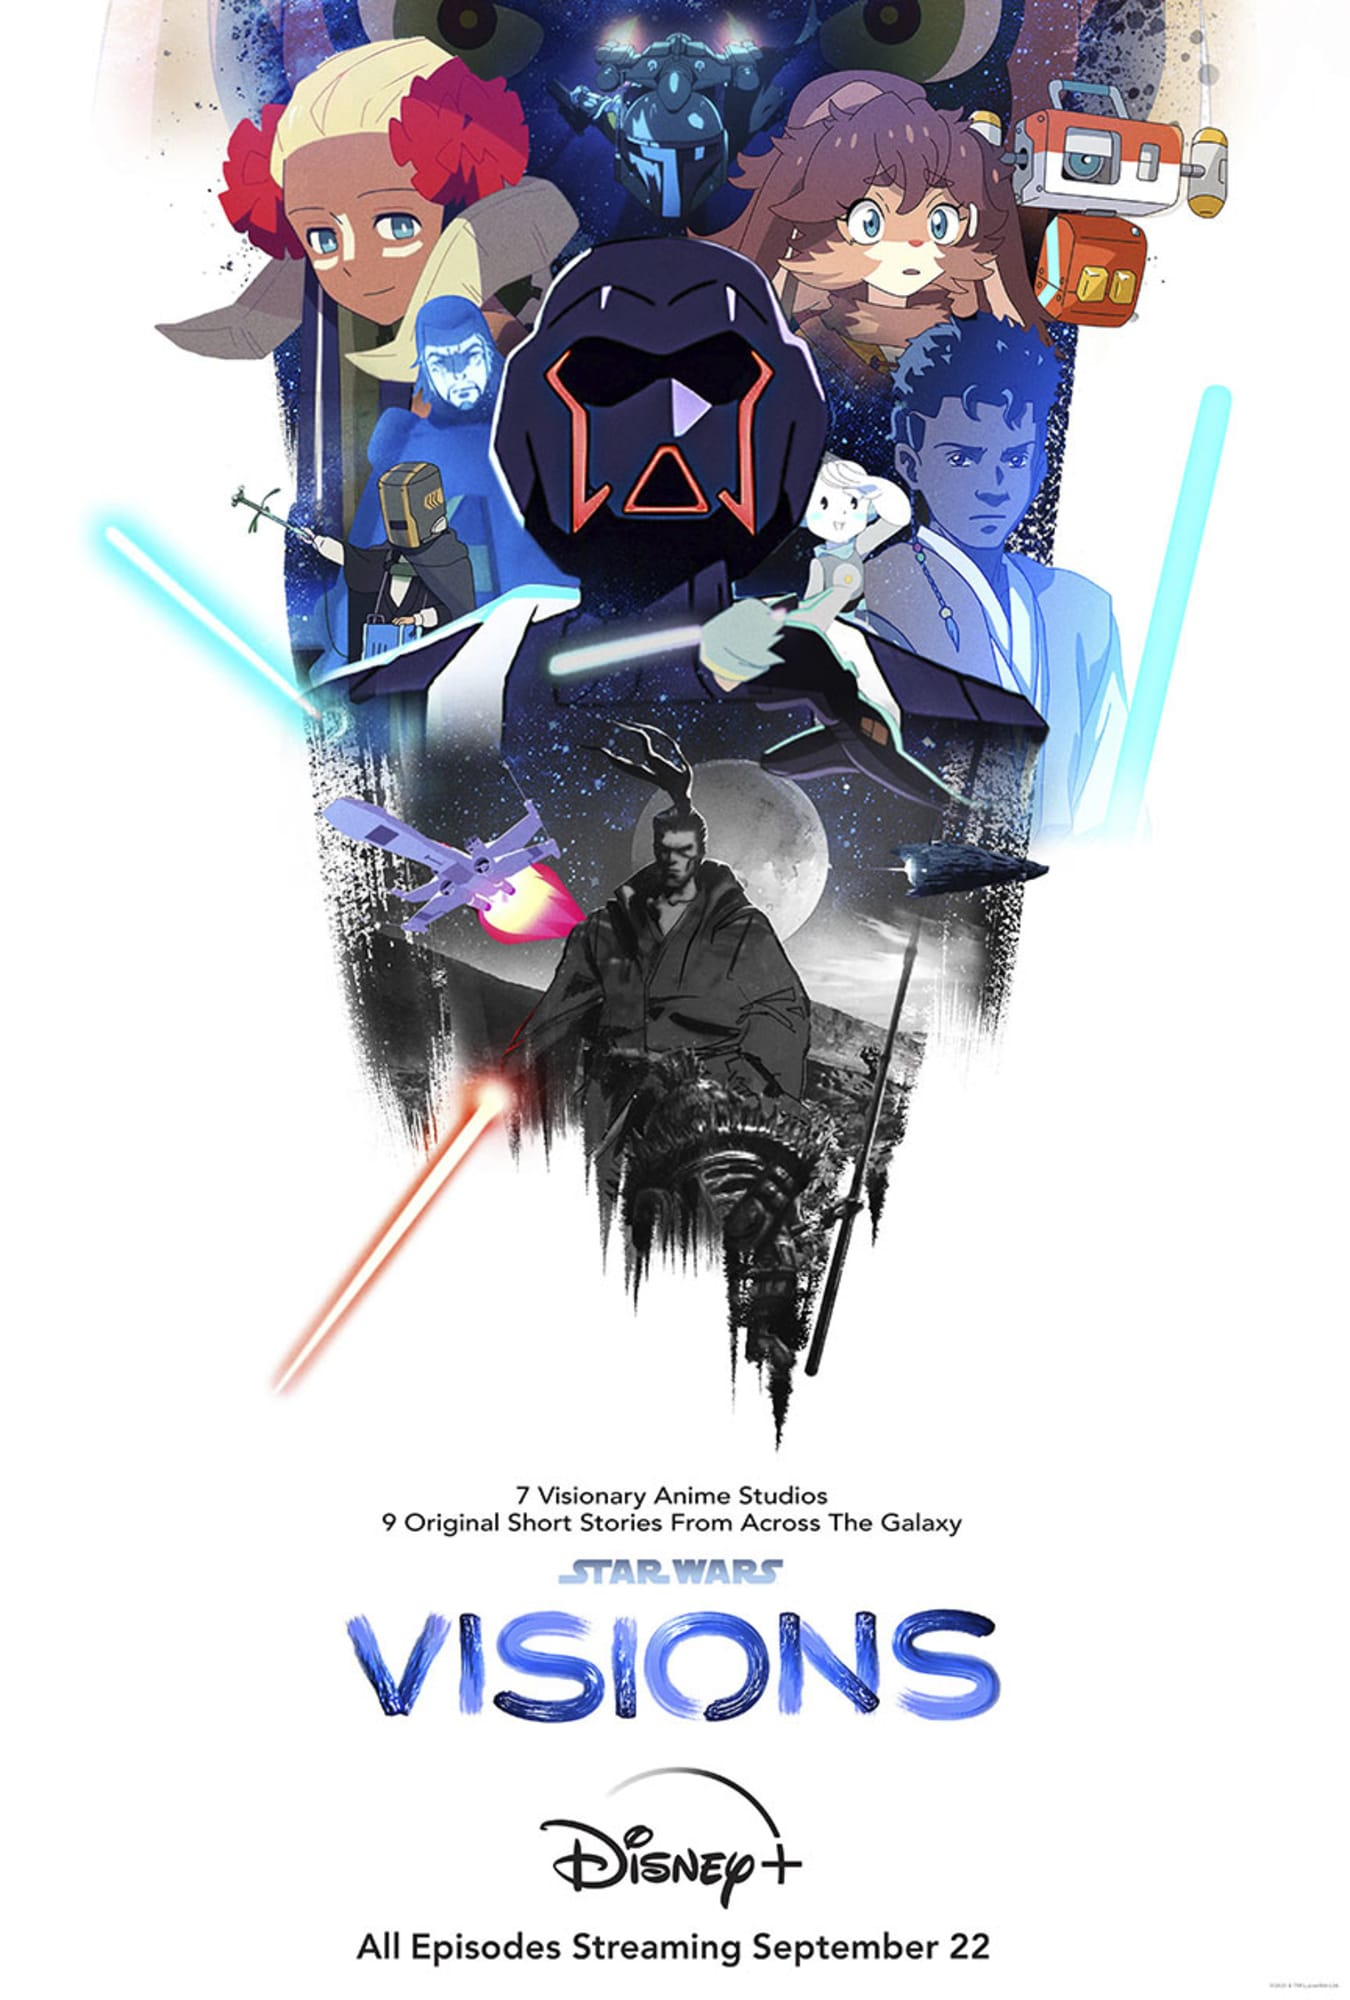 Star Wars: Visions episodes ranked from worst to best